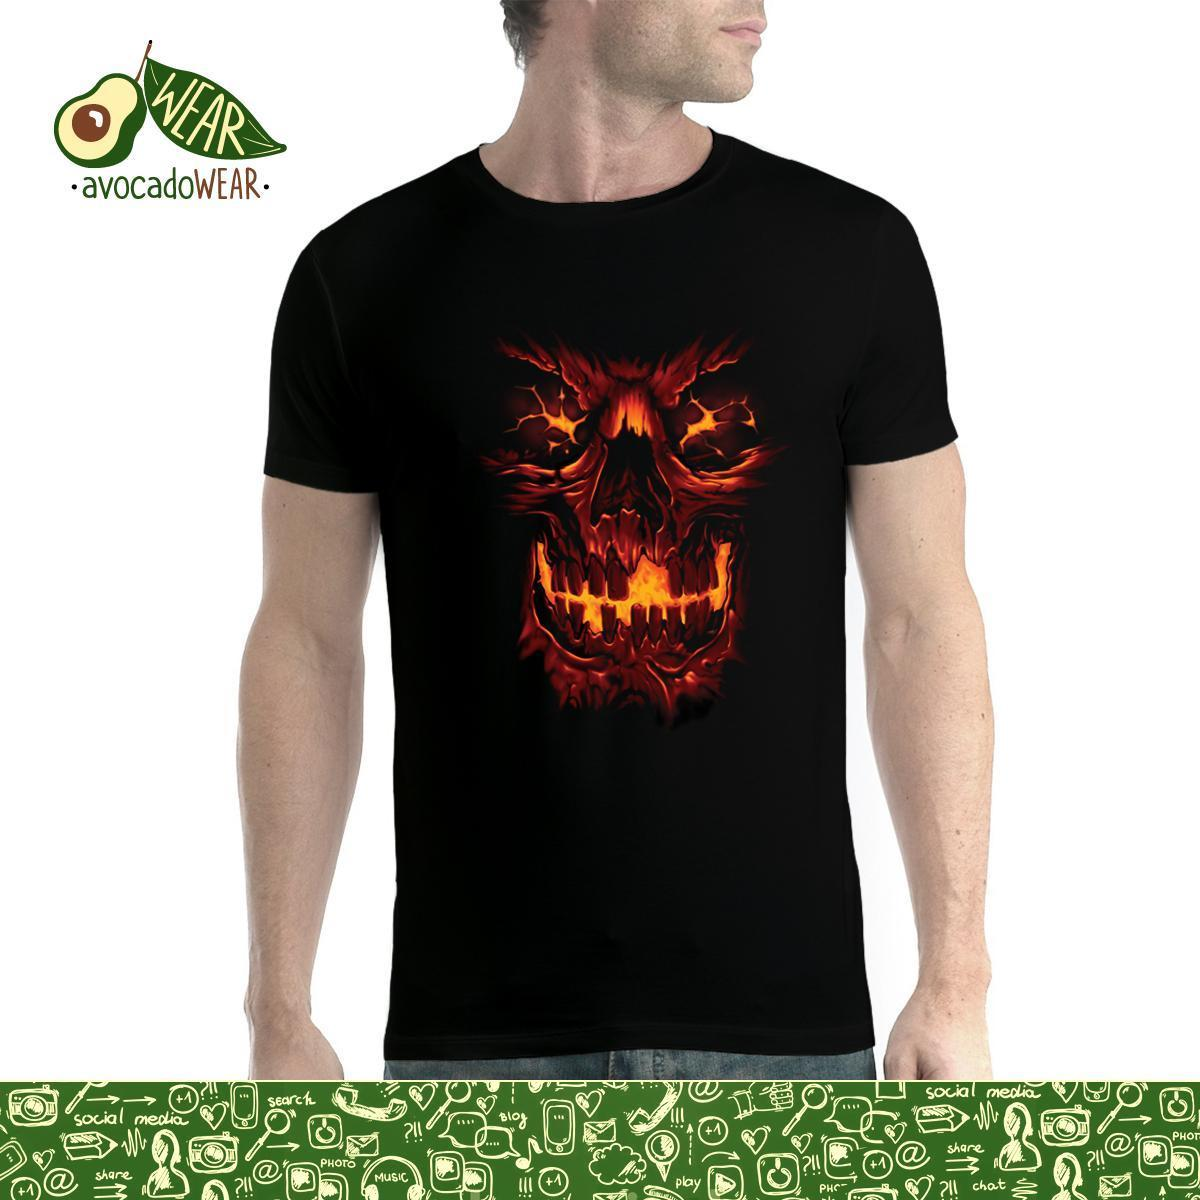 Skull Fire Scary Horror Men T shirt XS 5XL NewStreetwear Funny Print Clothing Hip Tope Mans T Shirt Tops Tees Hot Sale Men in T Shirts from Men 39 s Clothing